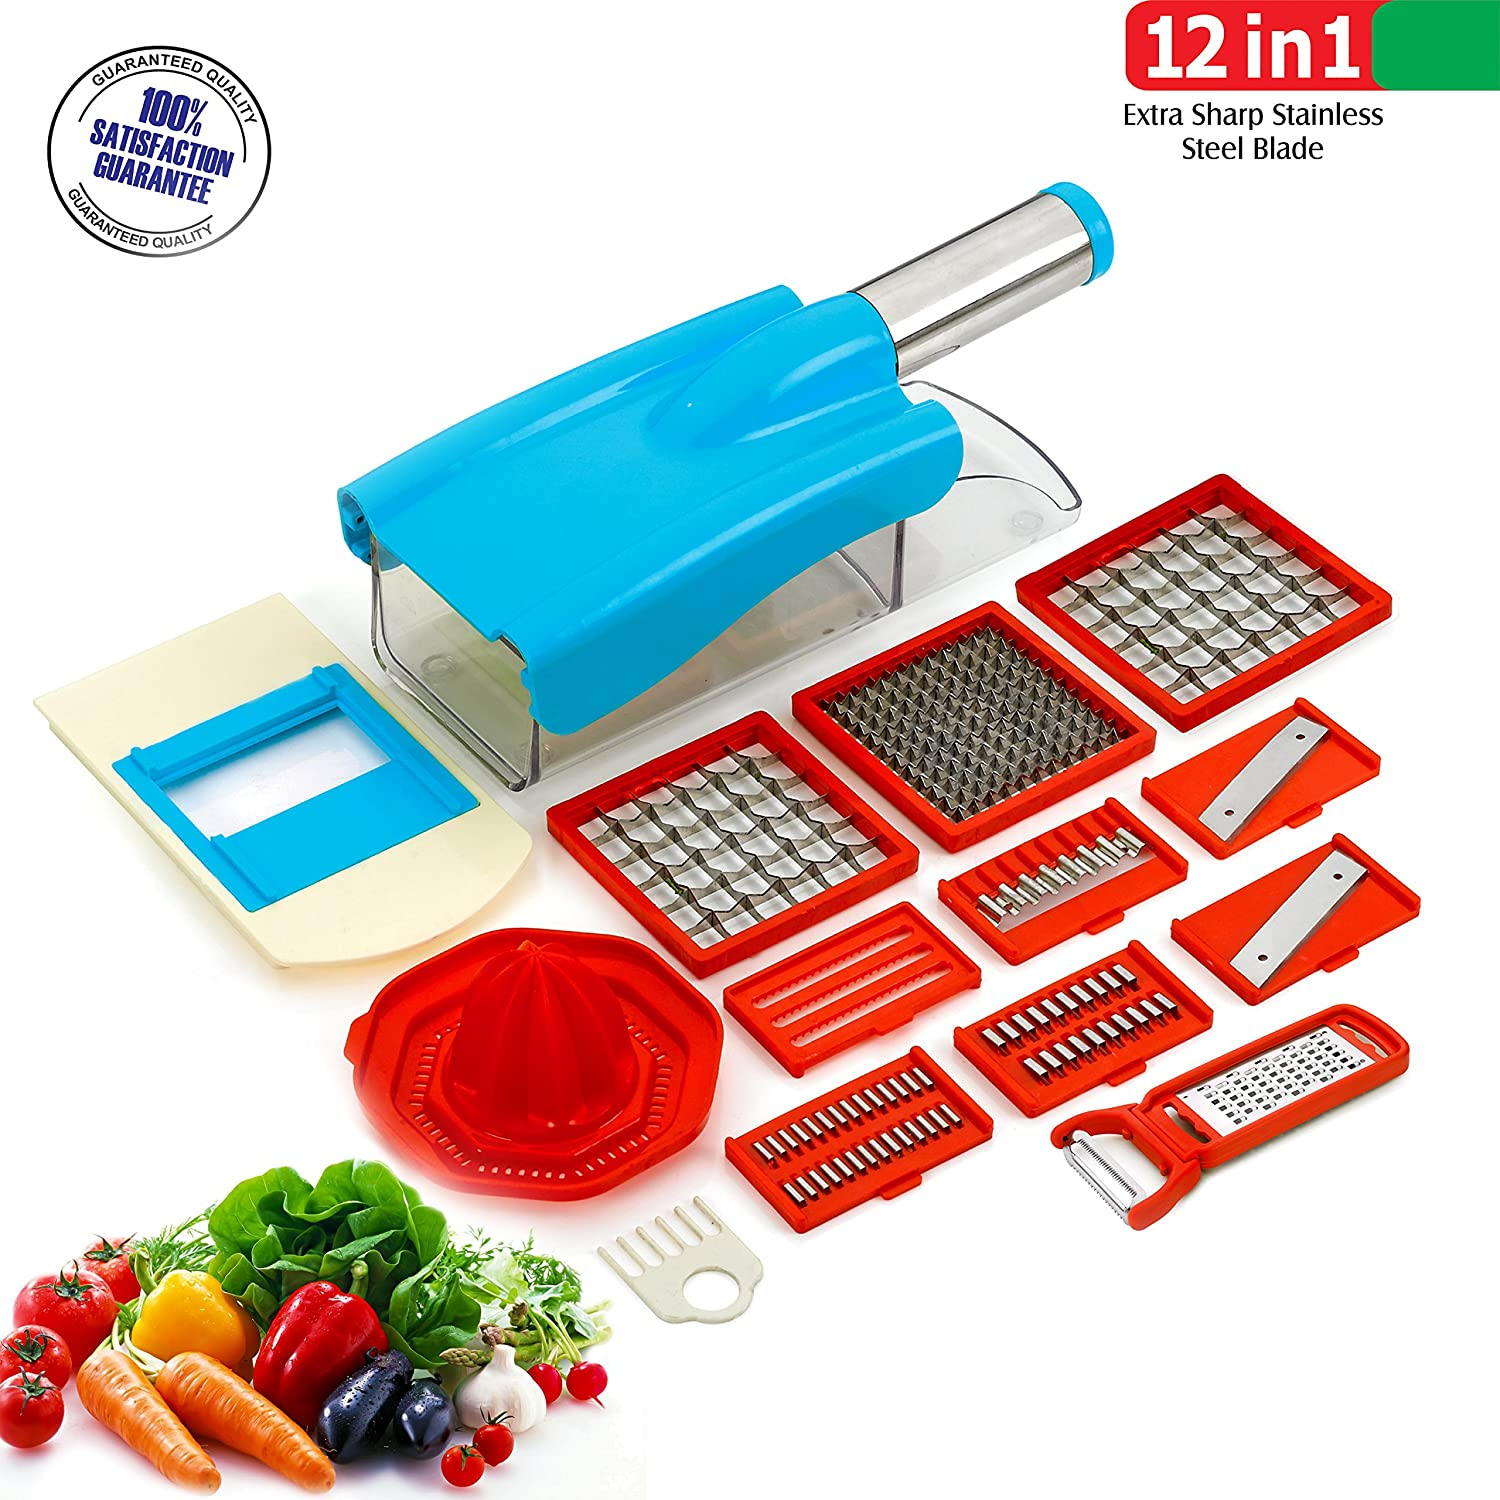 Upto 25% Or More off On Kitchen Tools By Amazon | BMS Lifestyle 12in1 Multipurpose Chopper Nicer Slicer Dicer - Vegetable and Fruit Chopper, Slicer, Cutter, Grater, Peeler for salads (Sky Blue,1 Year Warranty) @ Rs.545